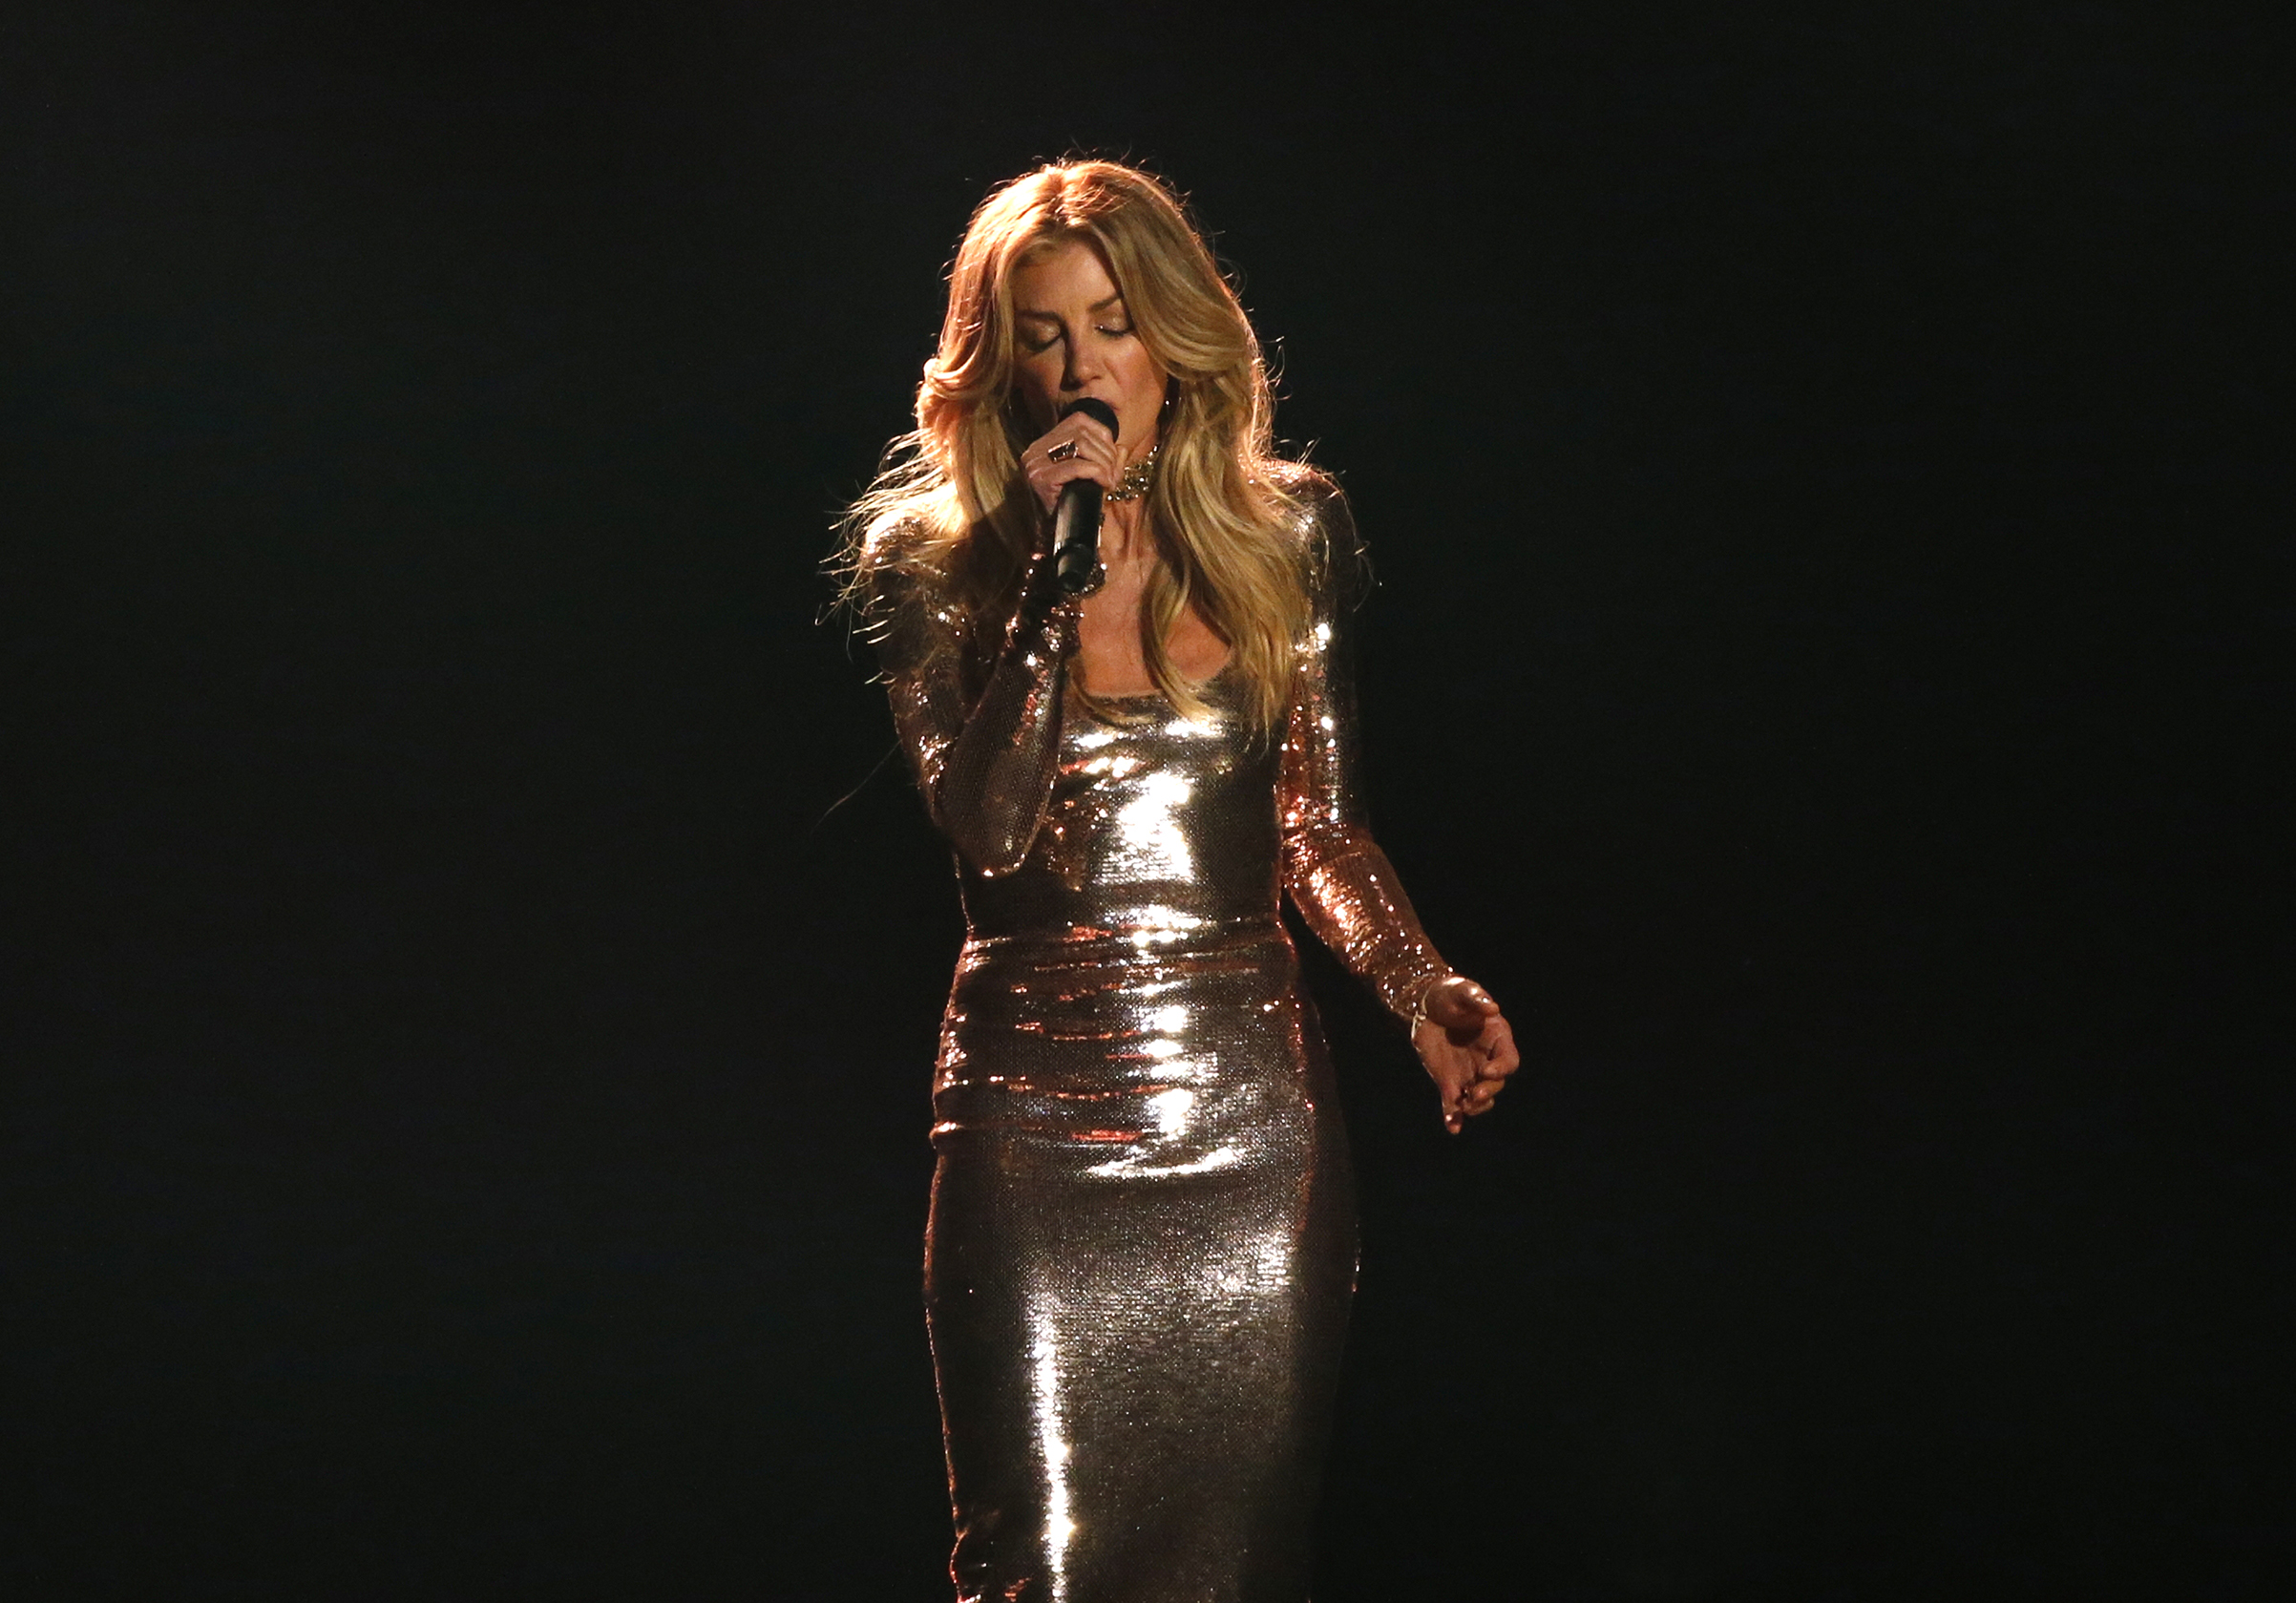 Faith Hill performs at the 52nd Academy of Country Music Awards on Feb. 2, 2017.